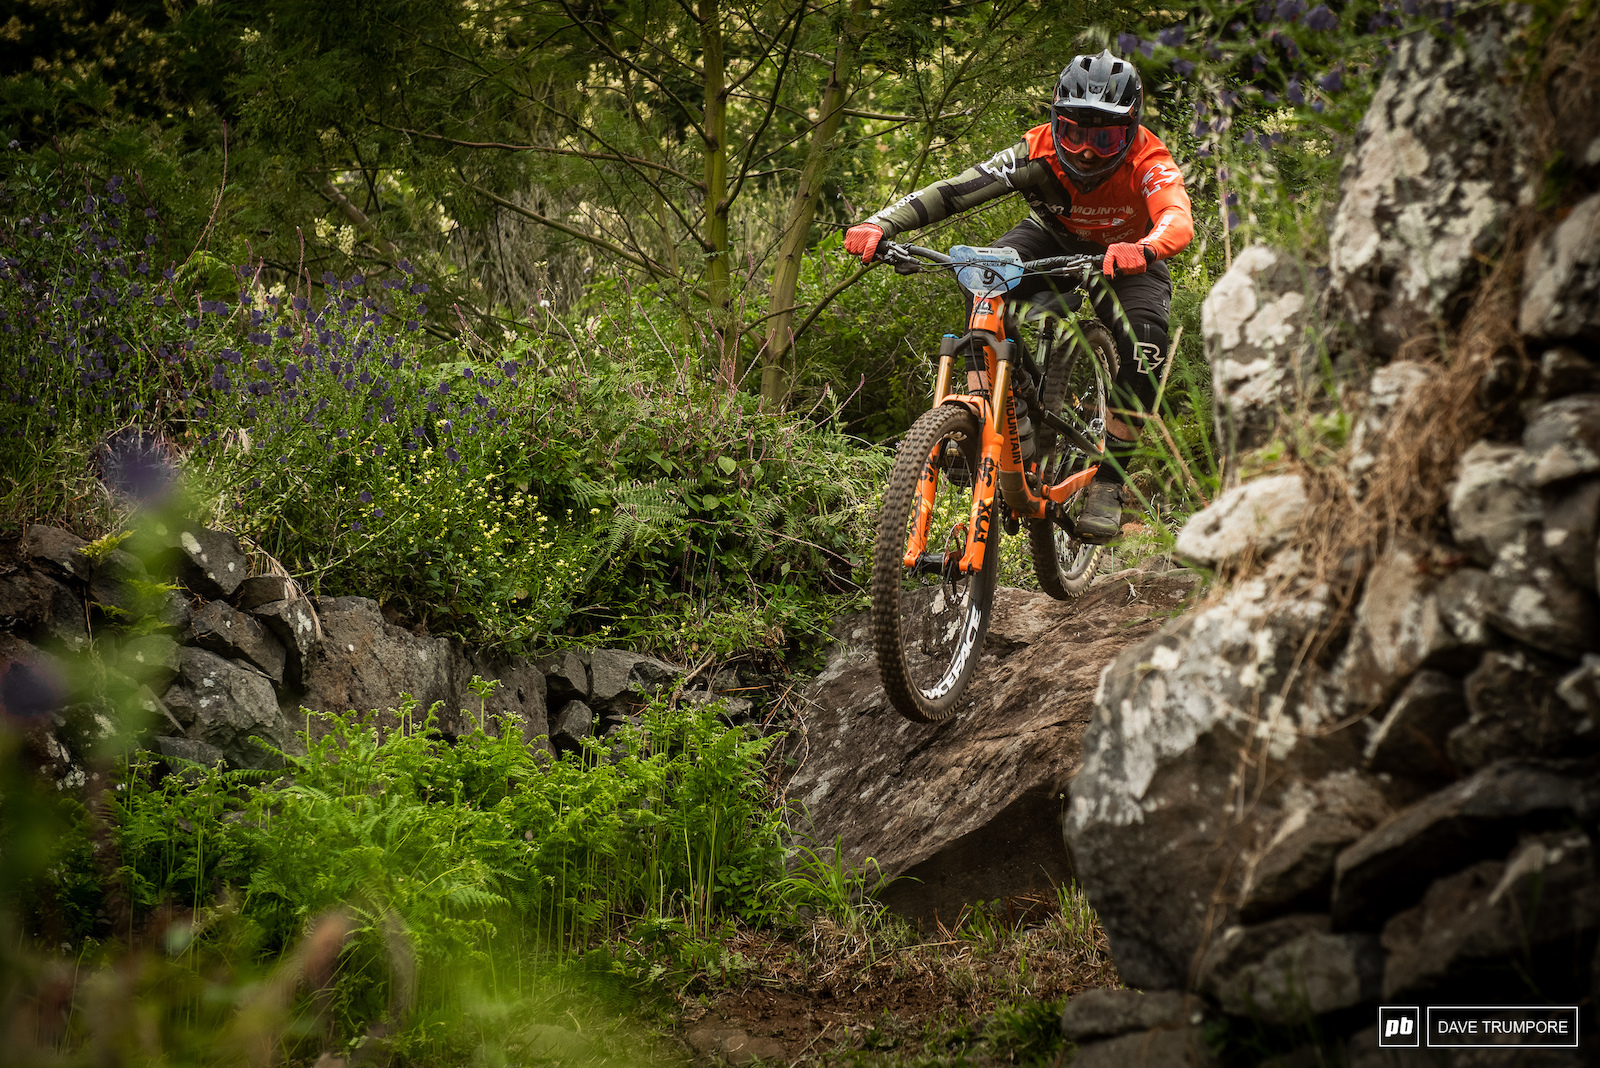 Jesse Melamed has been riding super fast and confident in practice